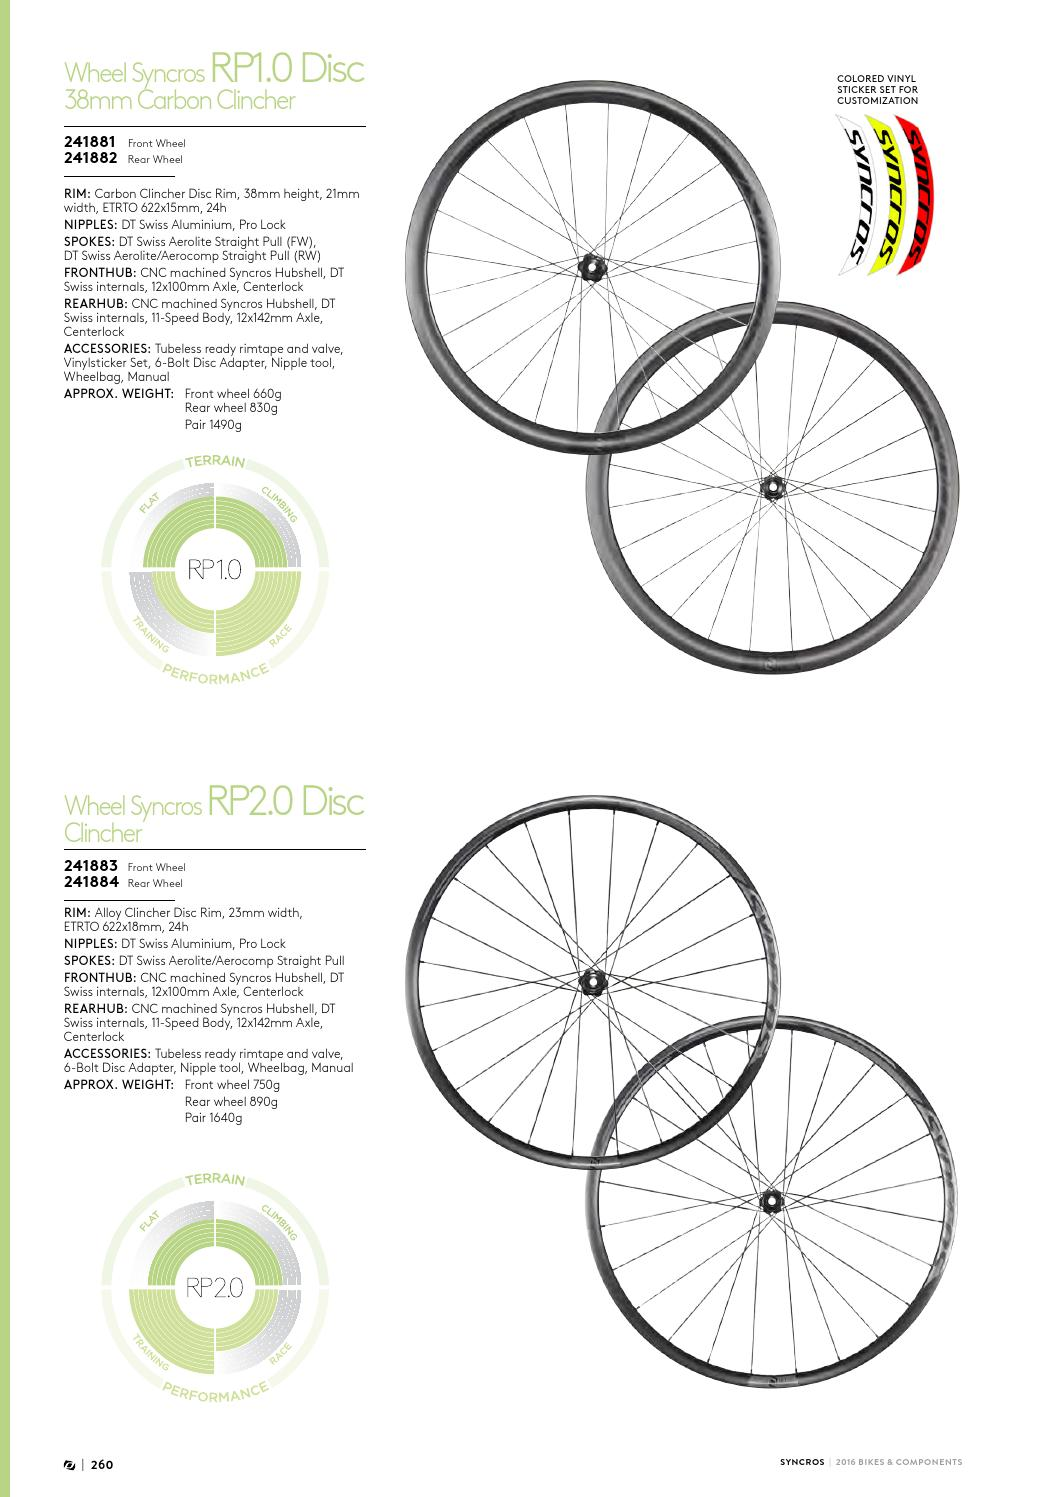 Scott Sports 2016 Bikes Components Workbook By Rullens Tweewielers Made Issuu